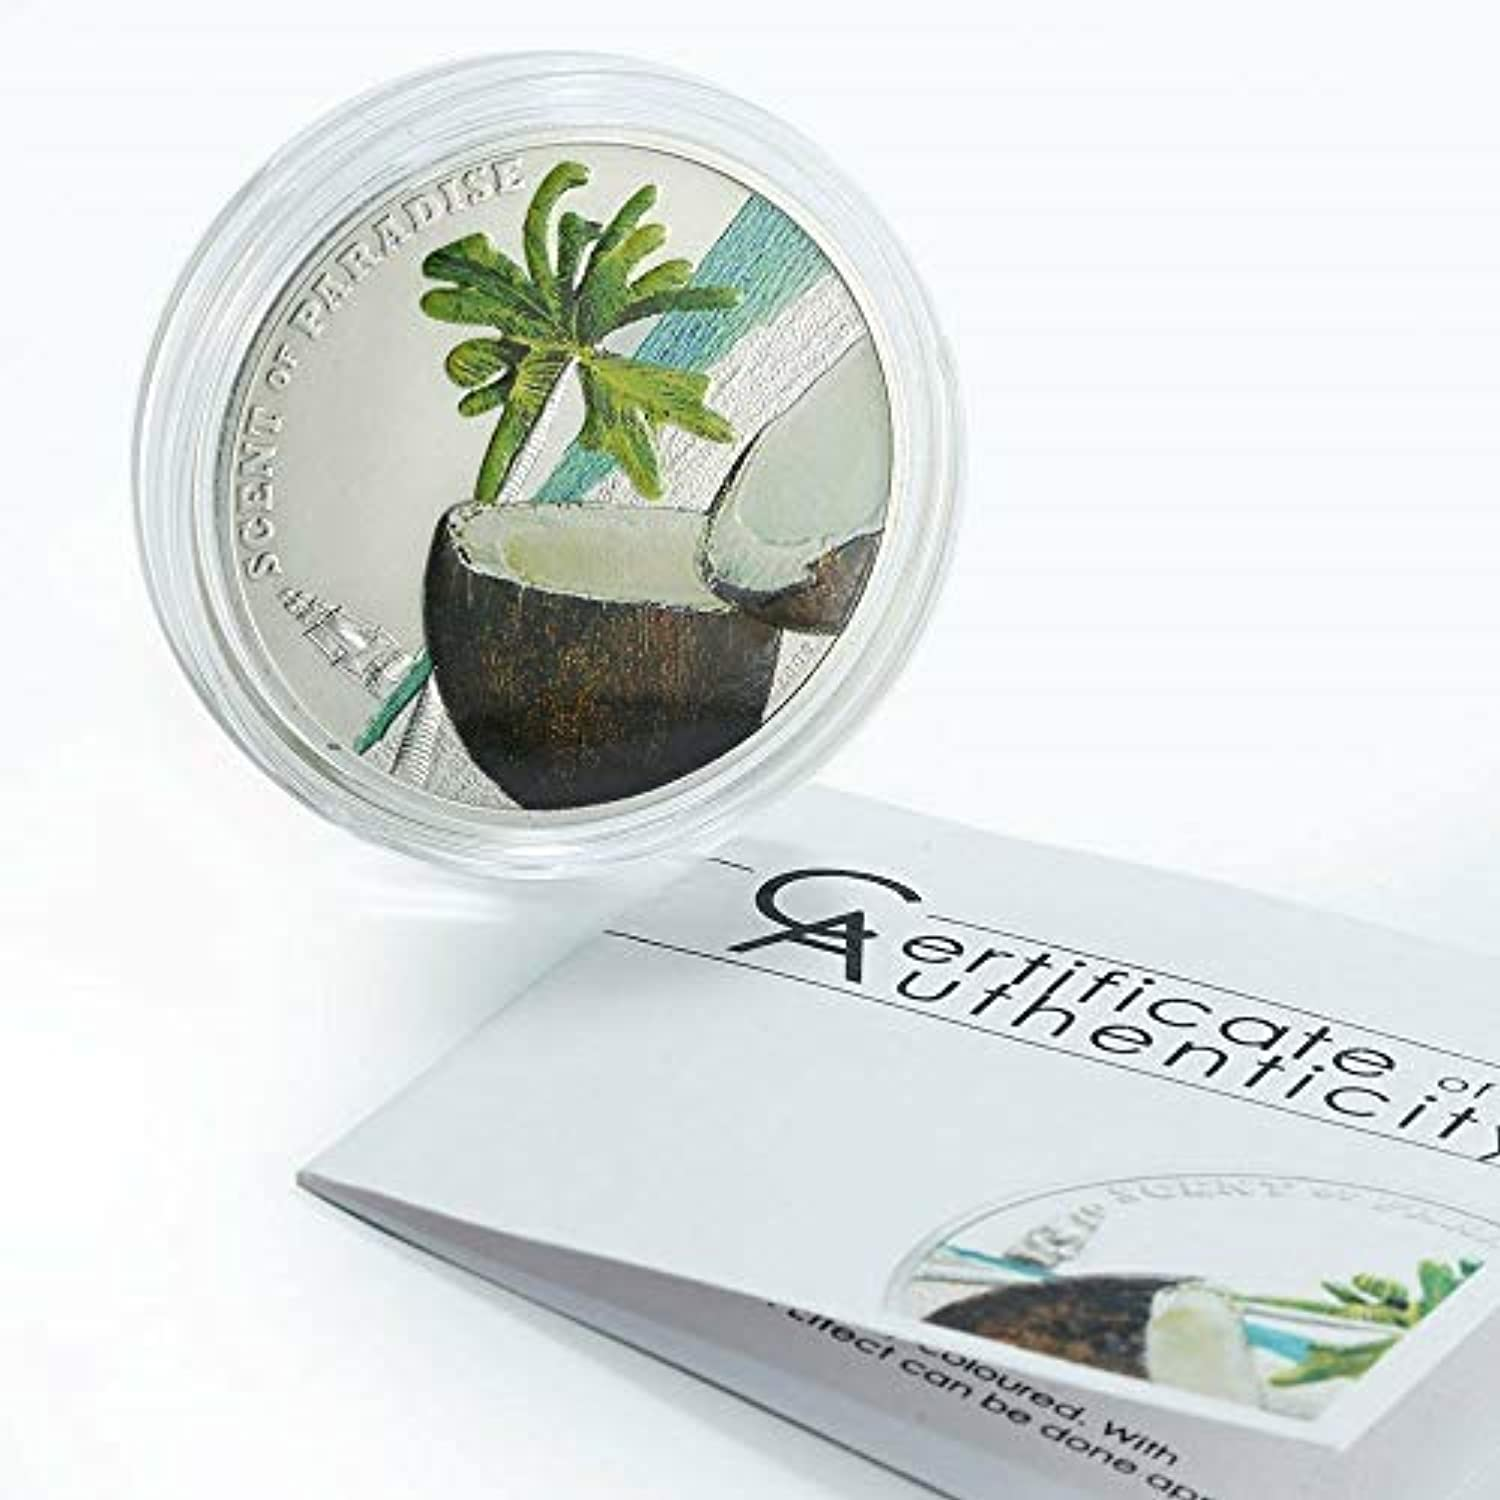 TGBCH Palau Scent Of Coconut 2009  5 Silver Proof Coin